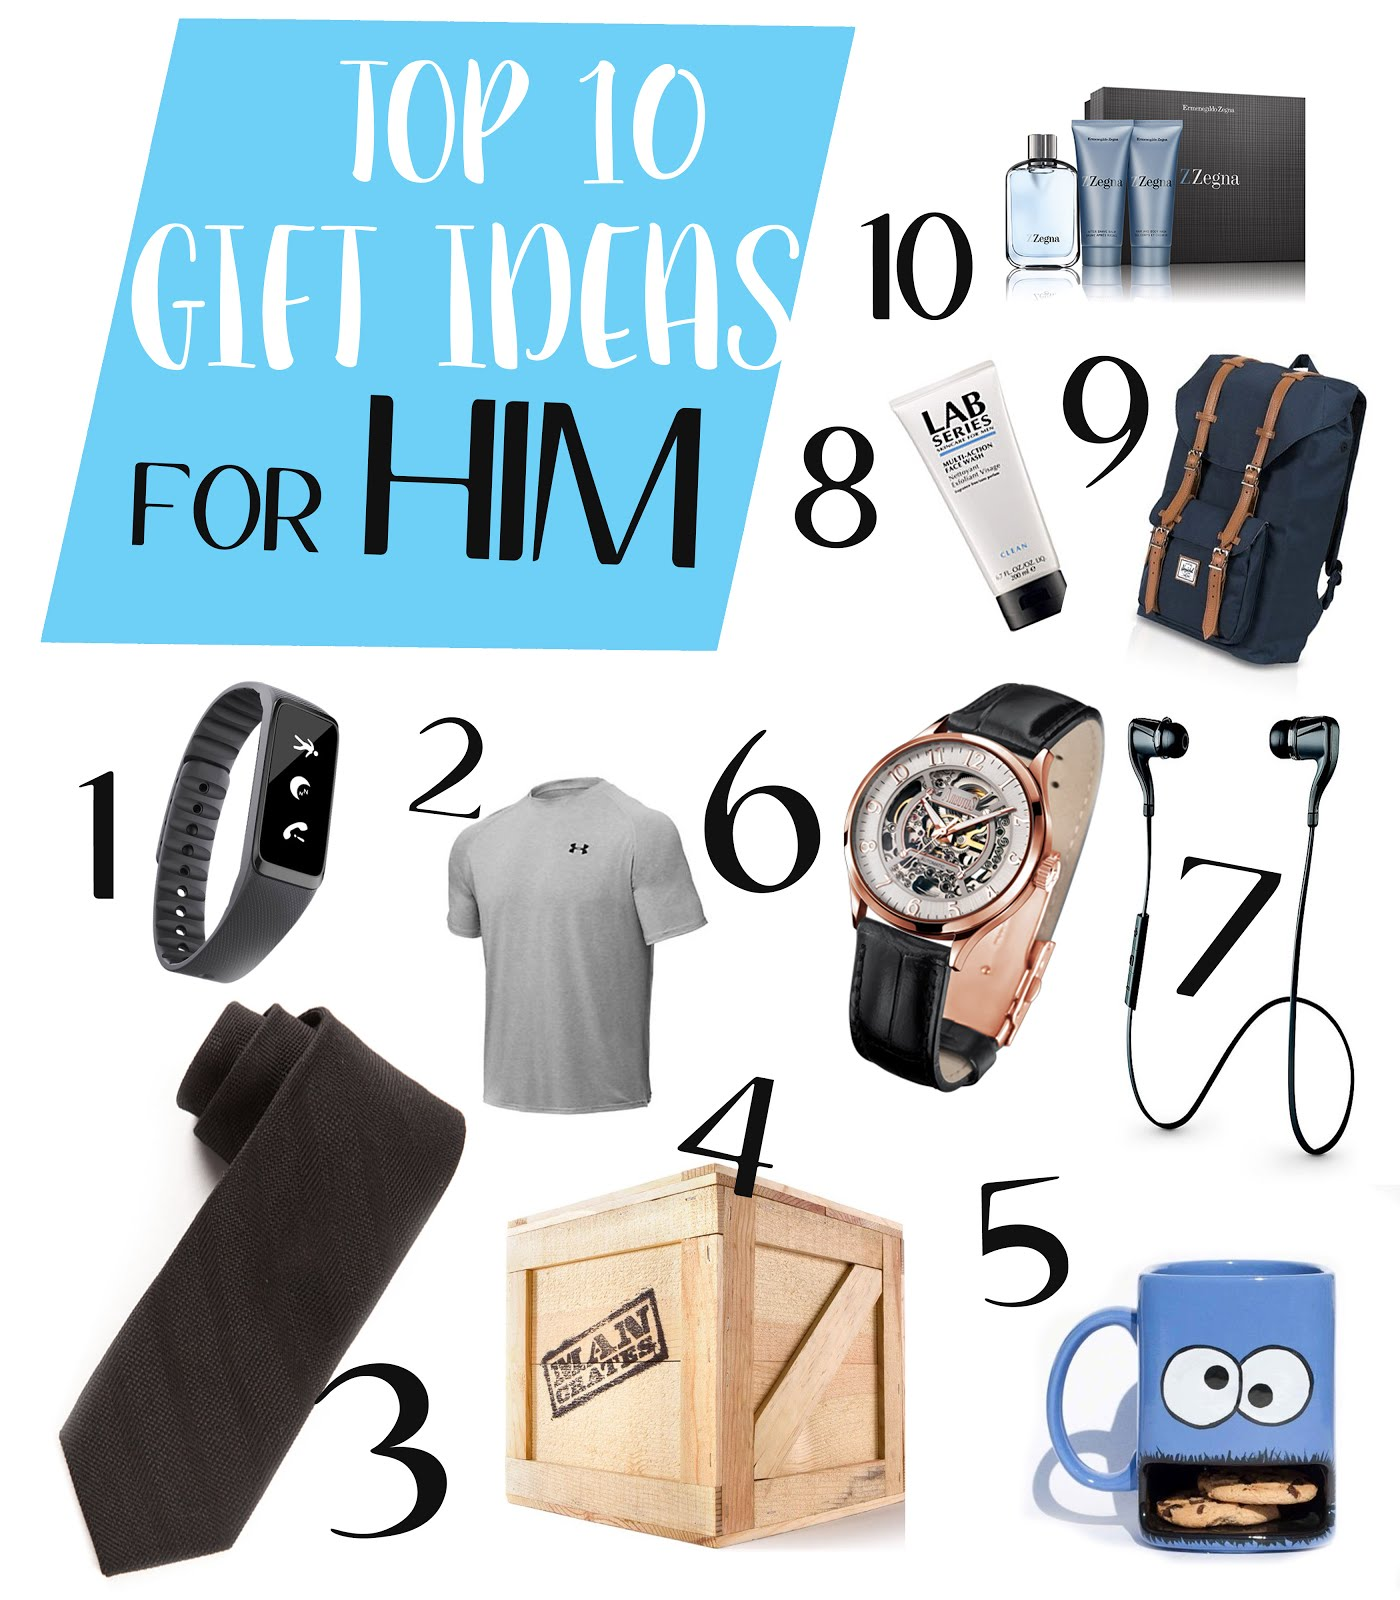 Top 10 gifts for him for christmas